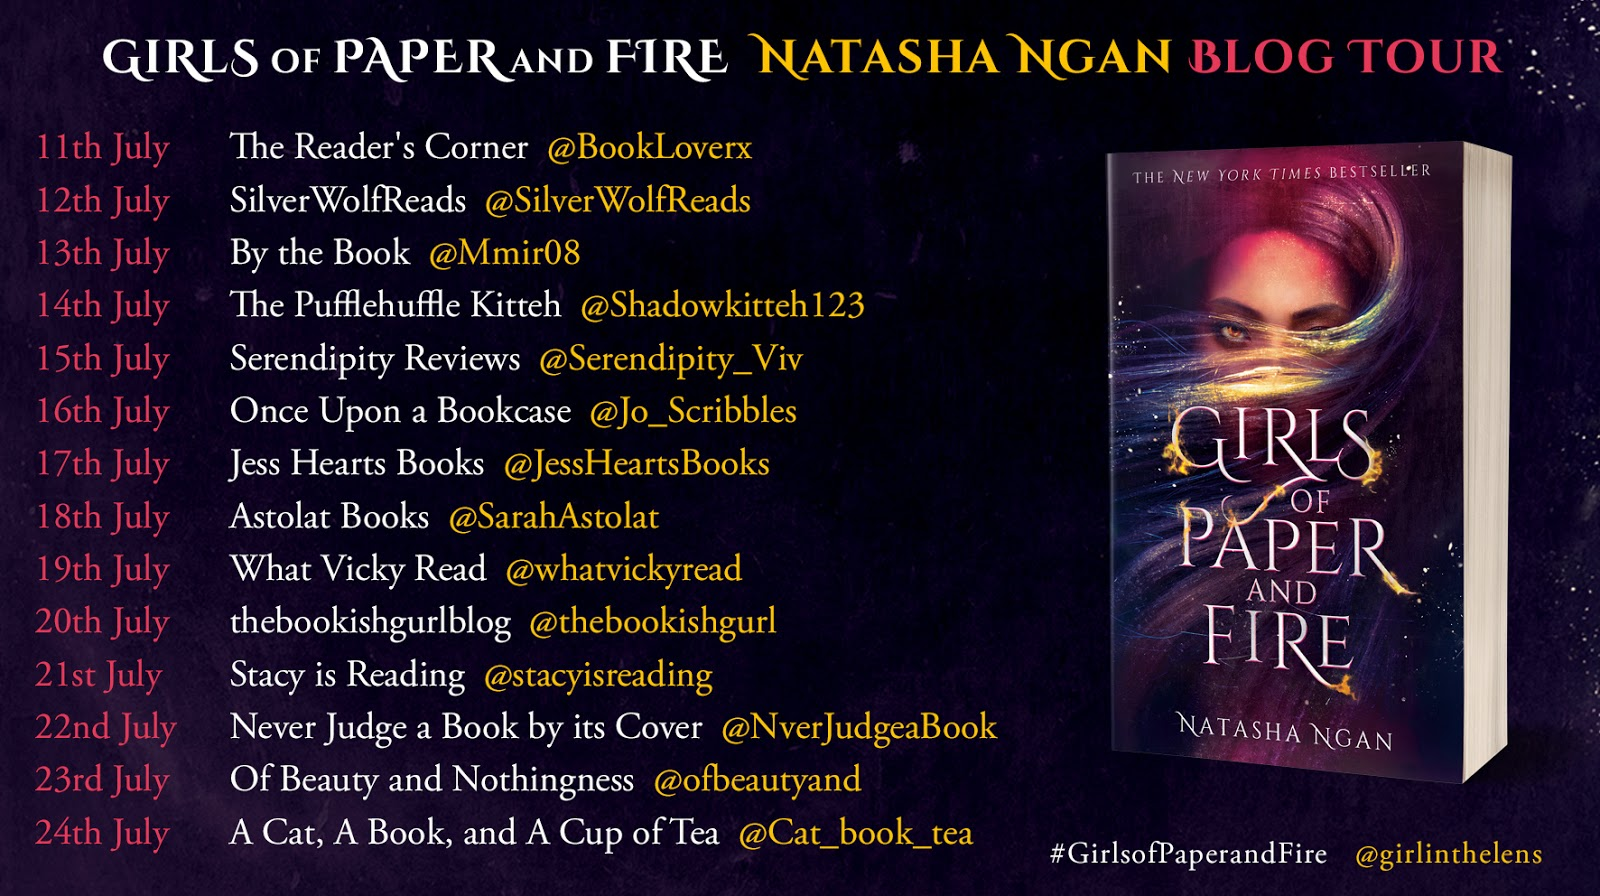 Girls of Paper and Fire by Natasha Ngan Paperback Blog Tour Banner